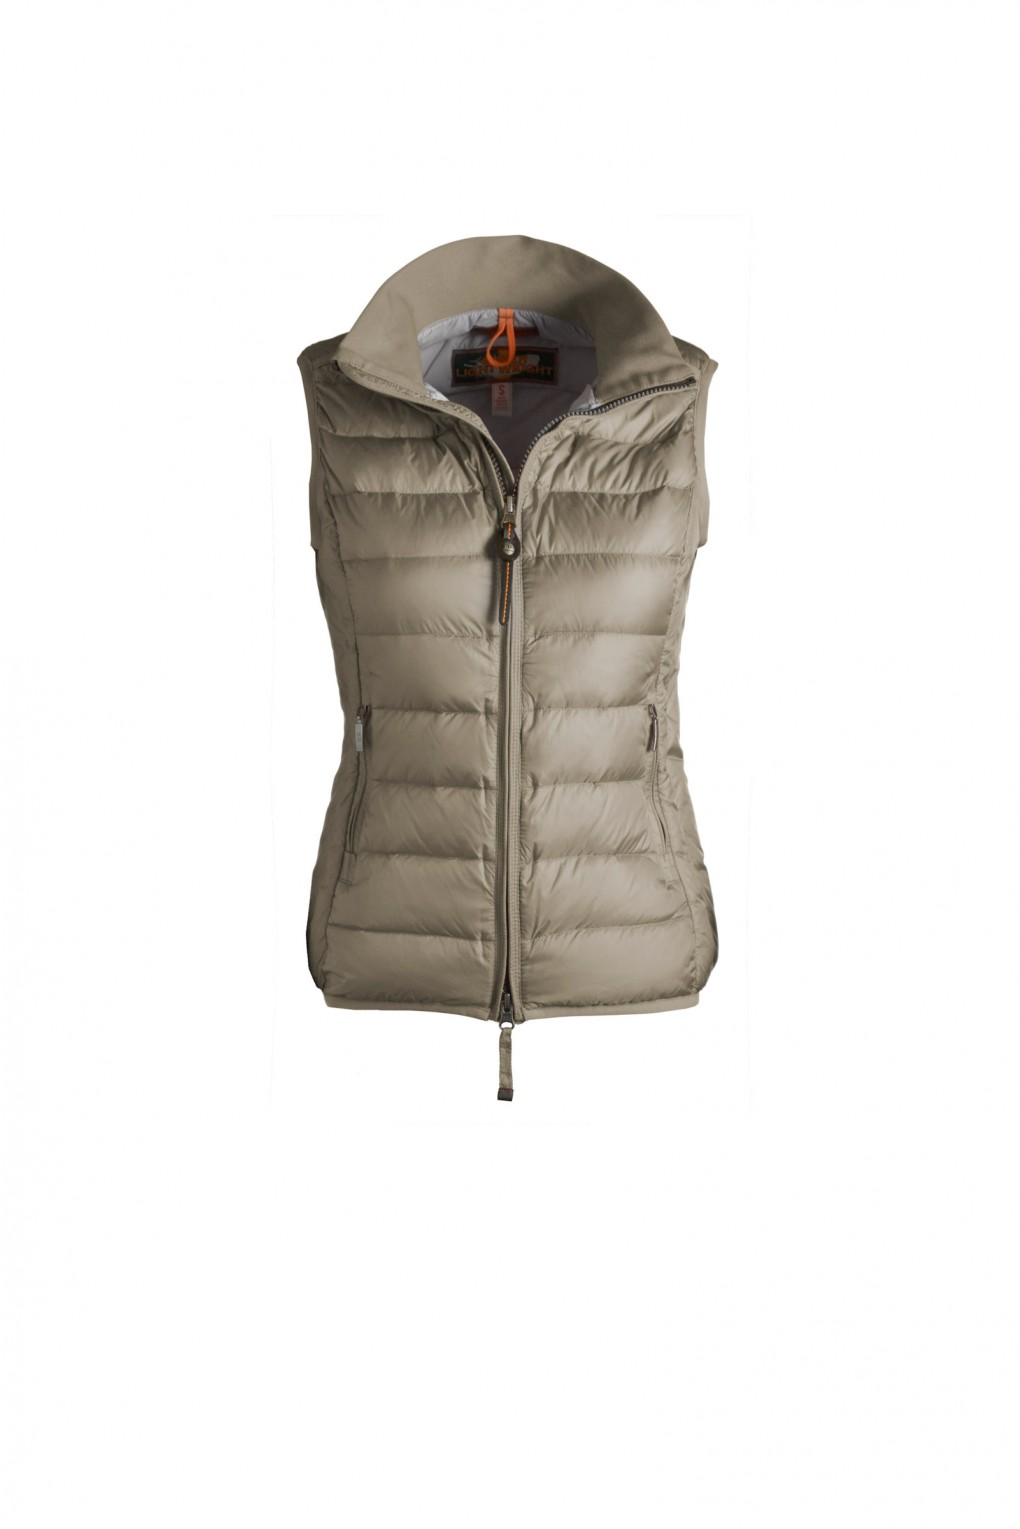 parajumpers DODIE6 woman outerwear Cappuccino